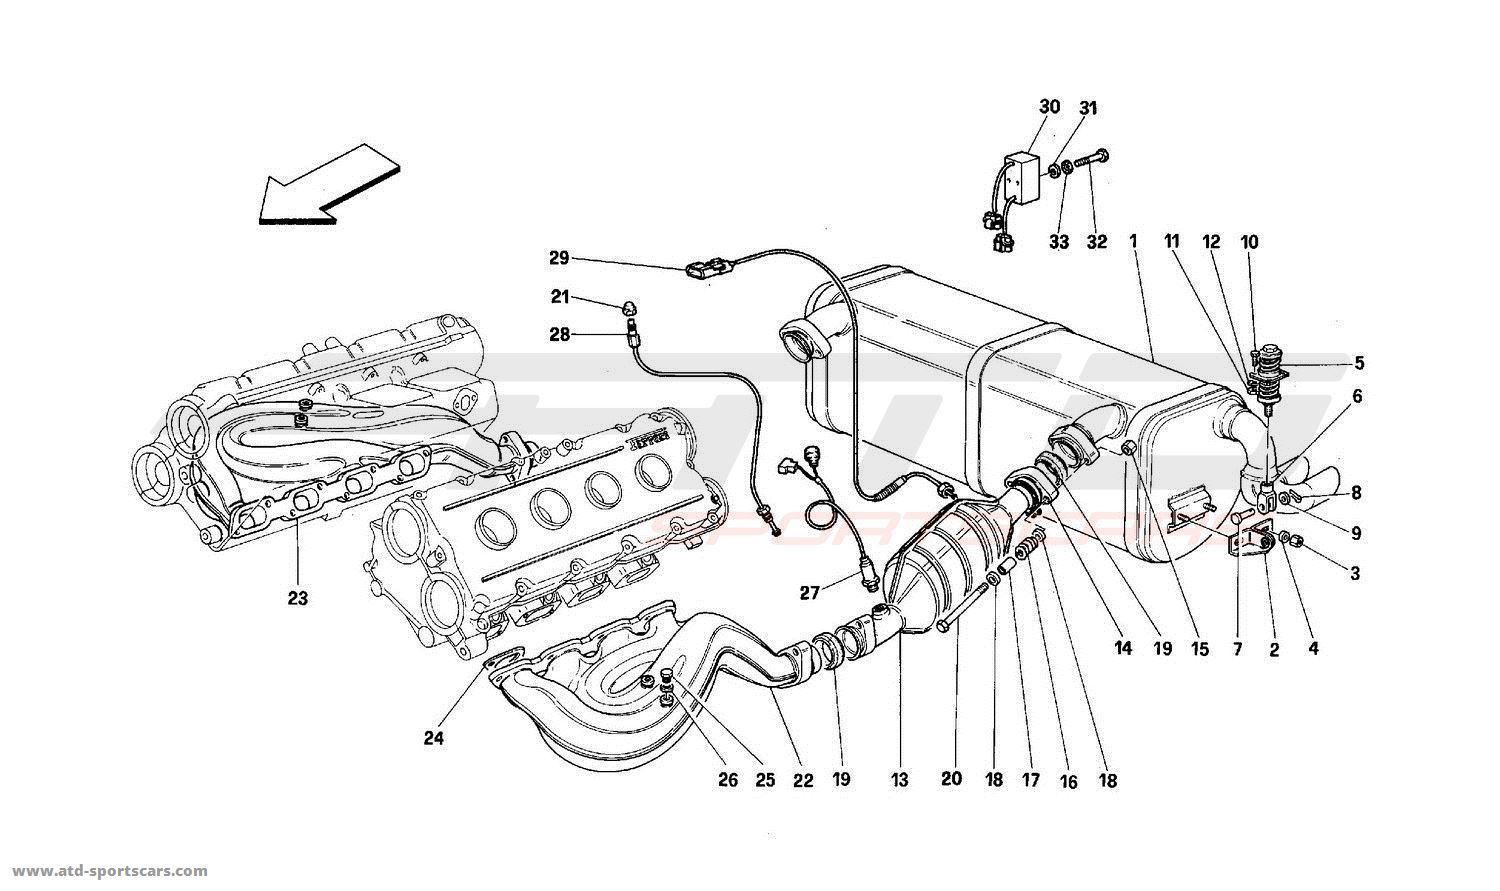 Ferrari Mondial T Exhaust System Parts At Atd Sportscars